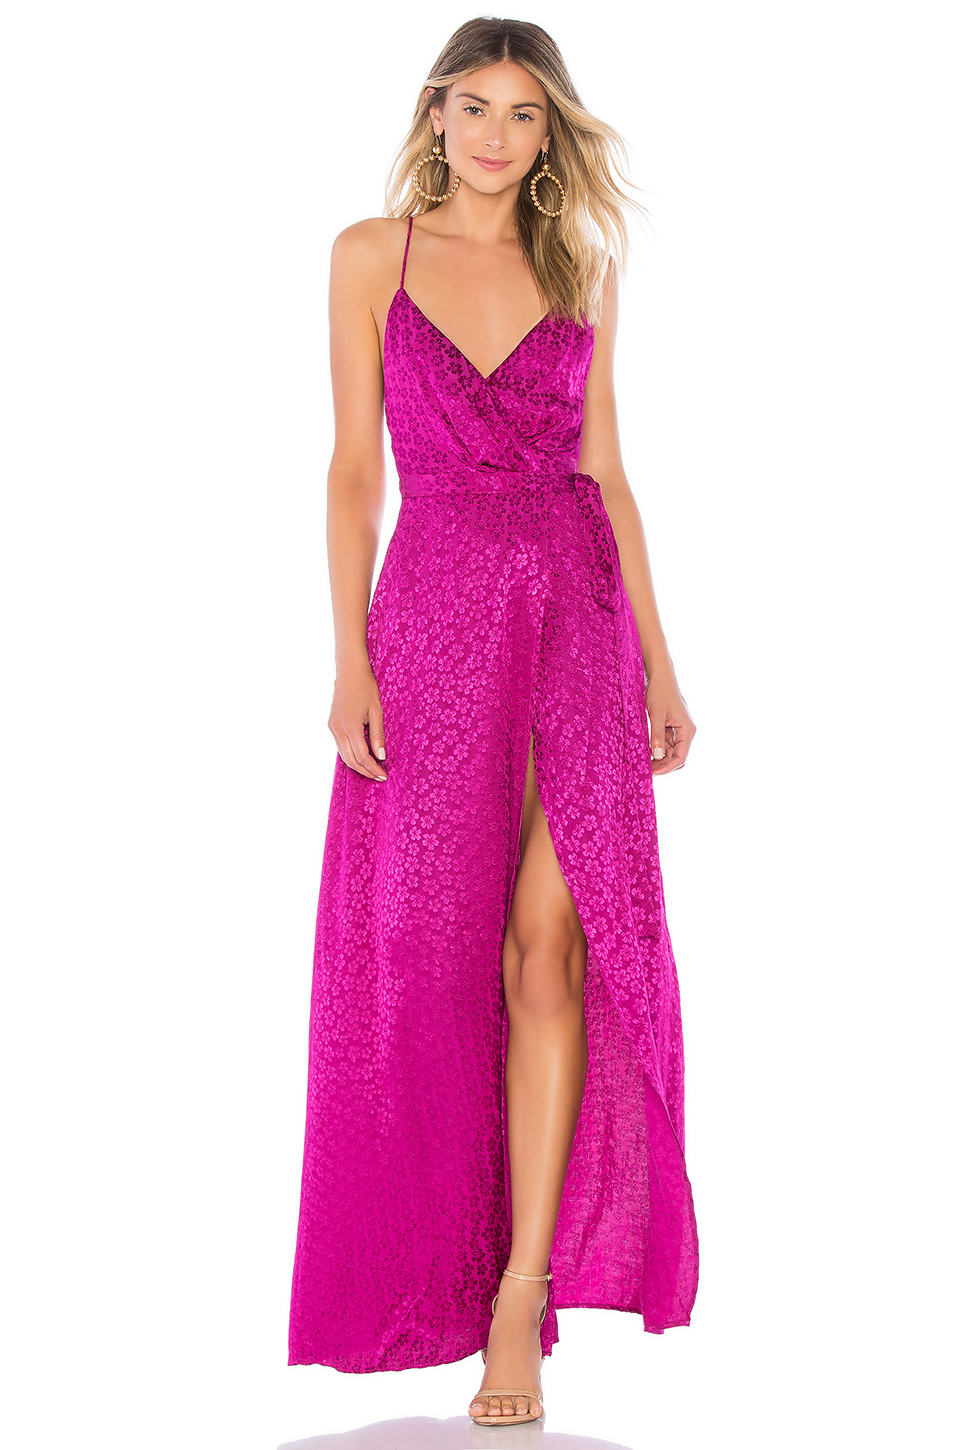 MAJORELLE Cubano Maxi Dress